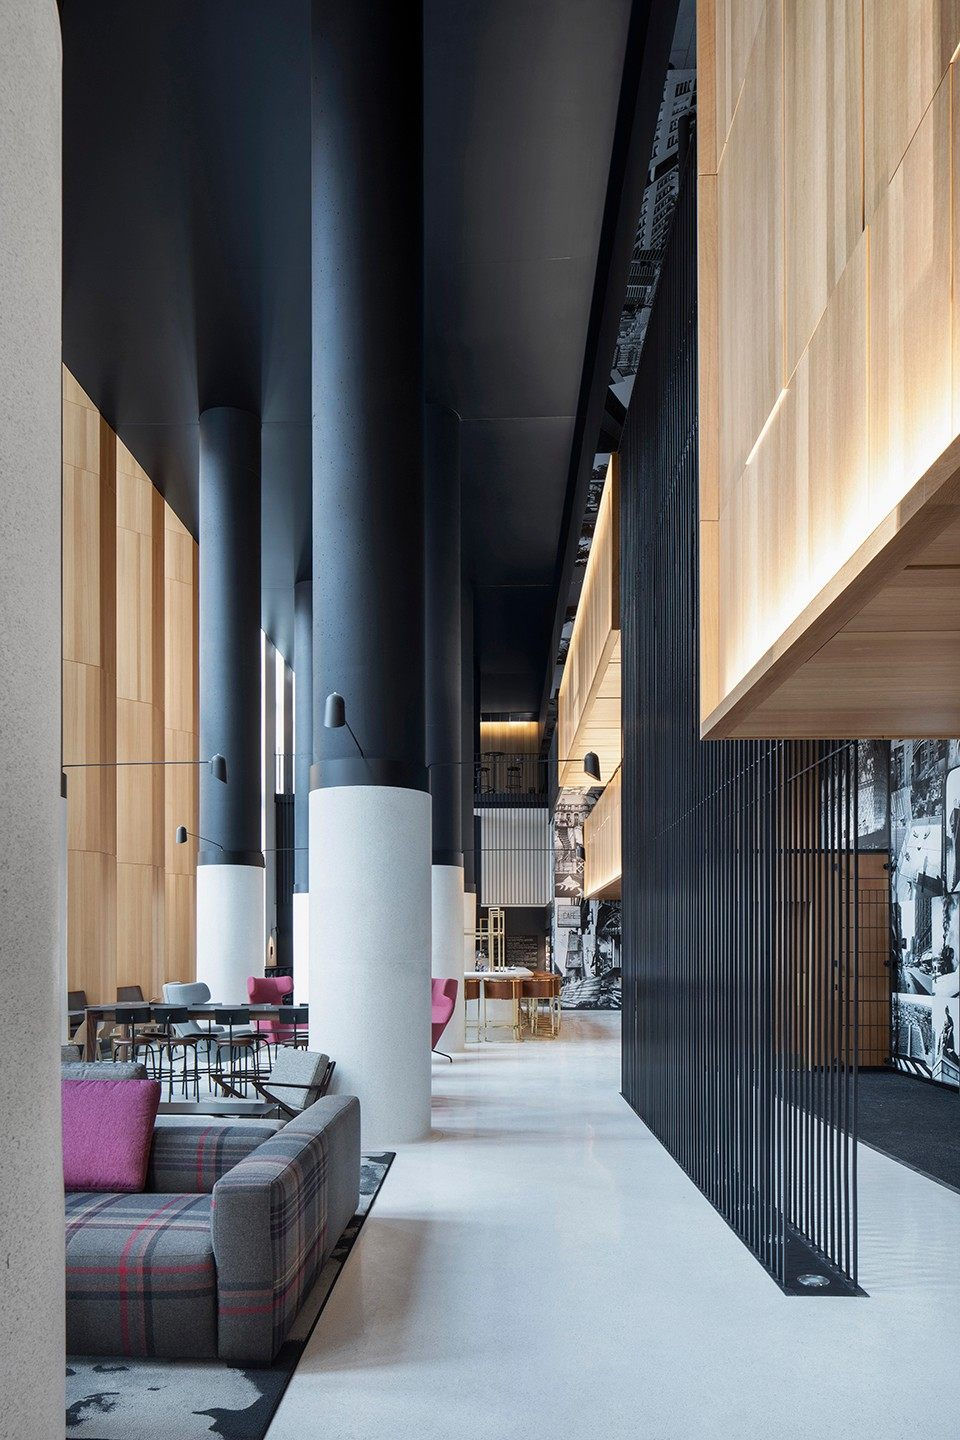 008-hotel-monville-by-acdf-architecture.jpg